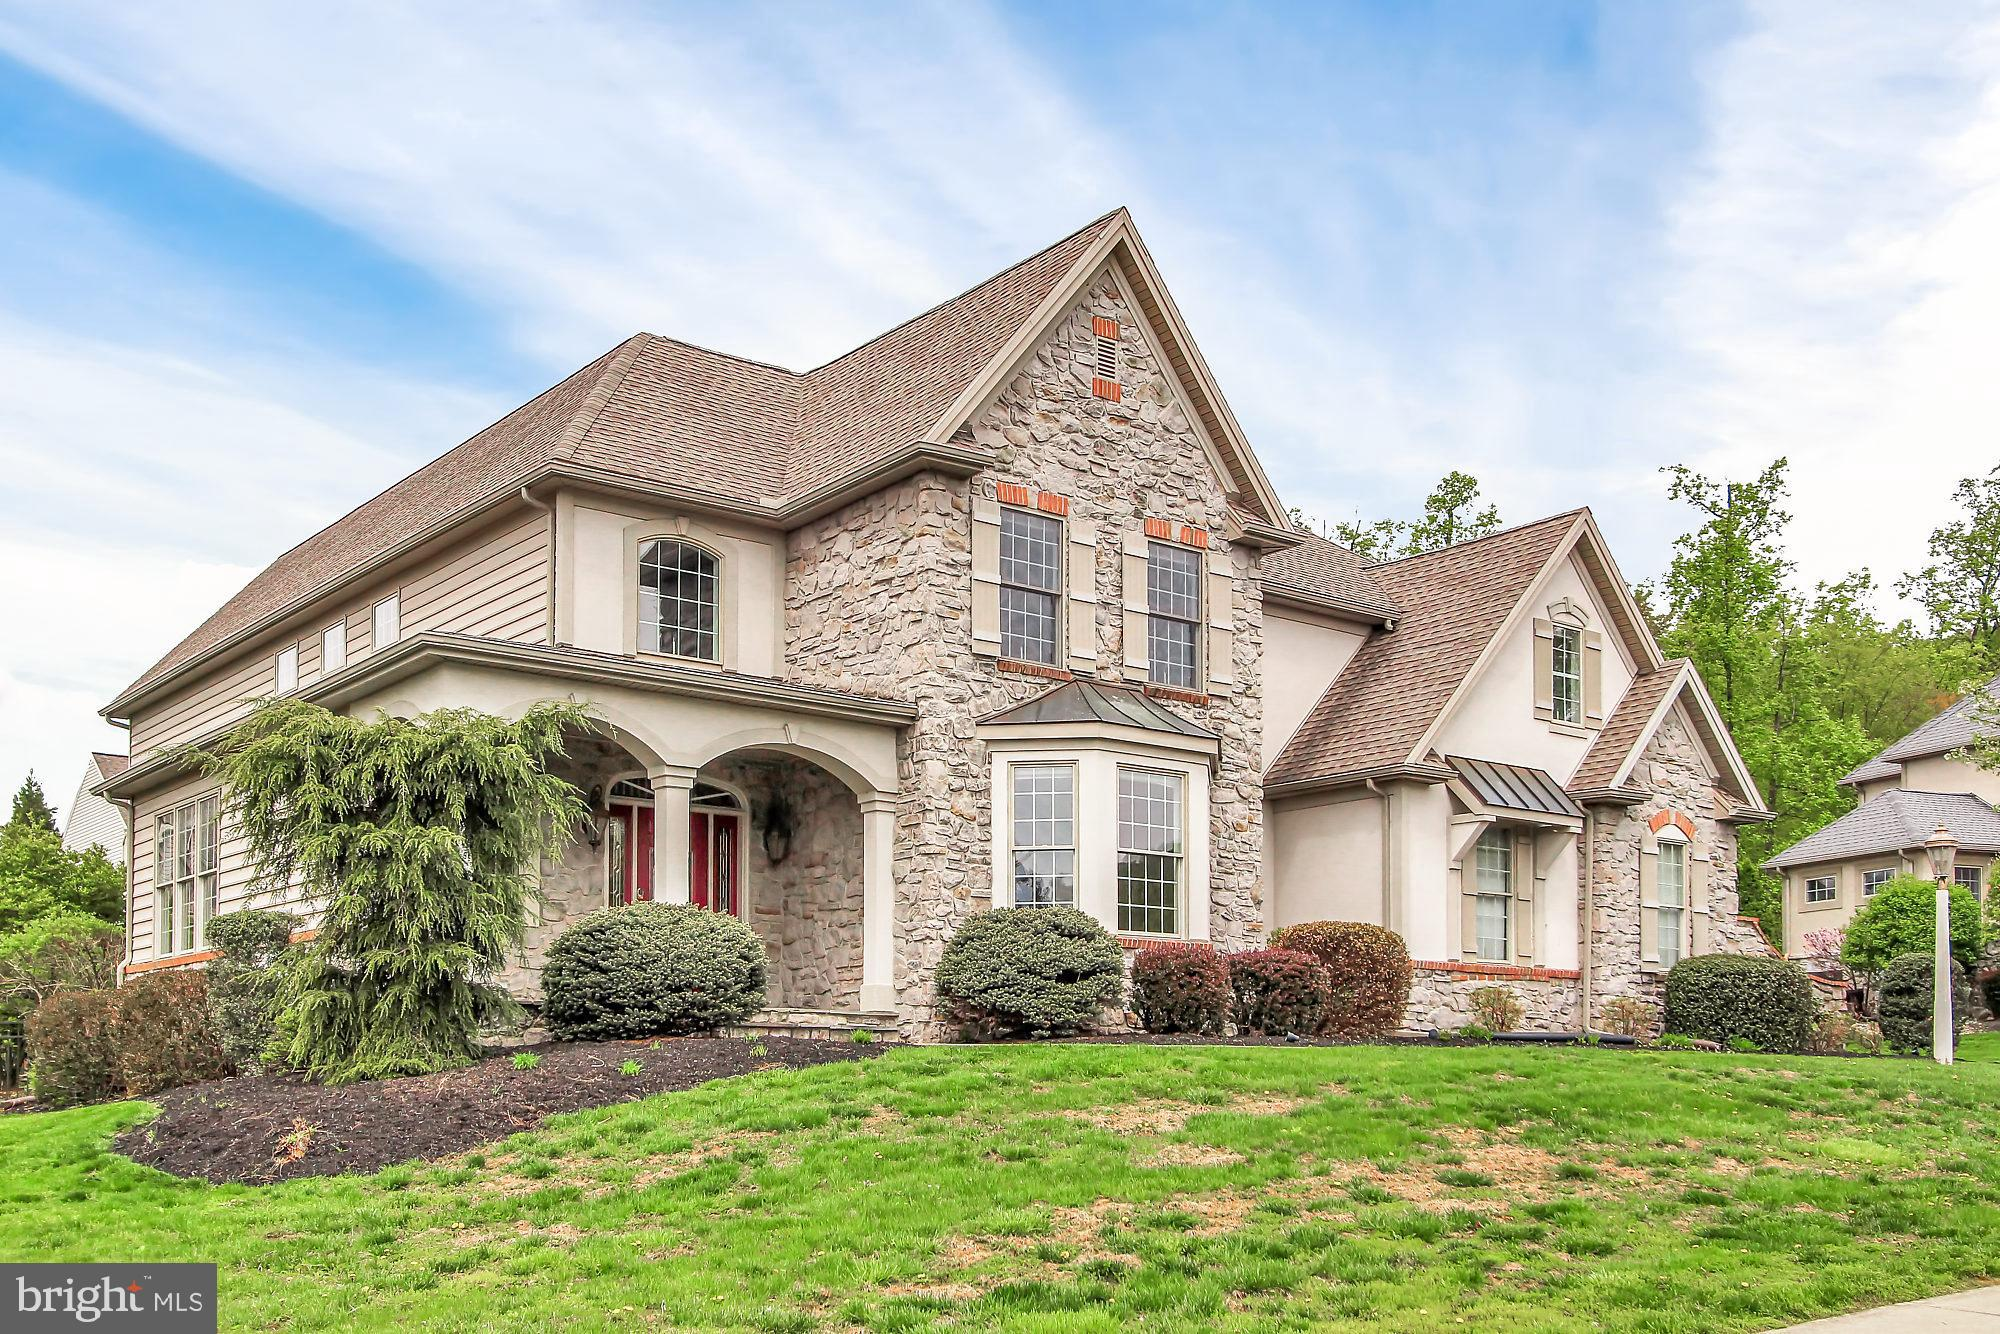 2334 FOREST LANE, HARRISBURG, PA 17112